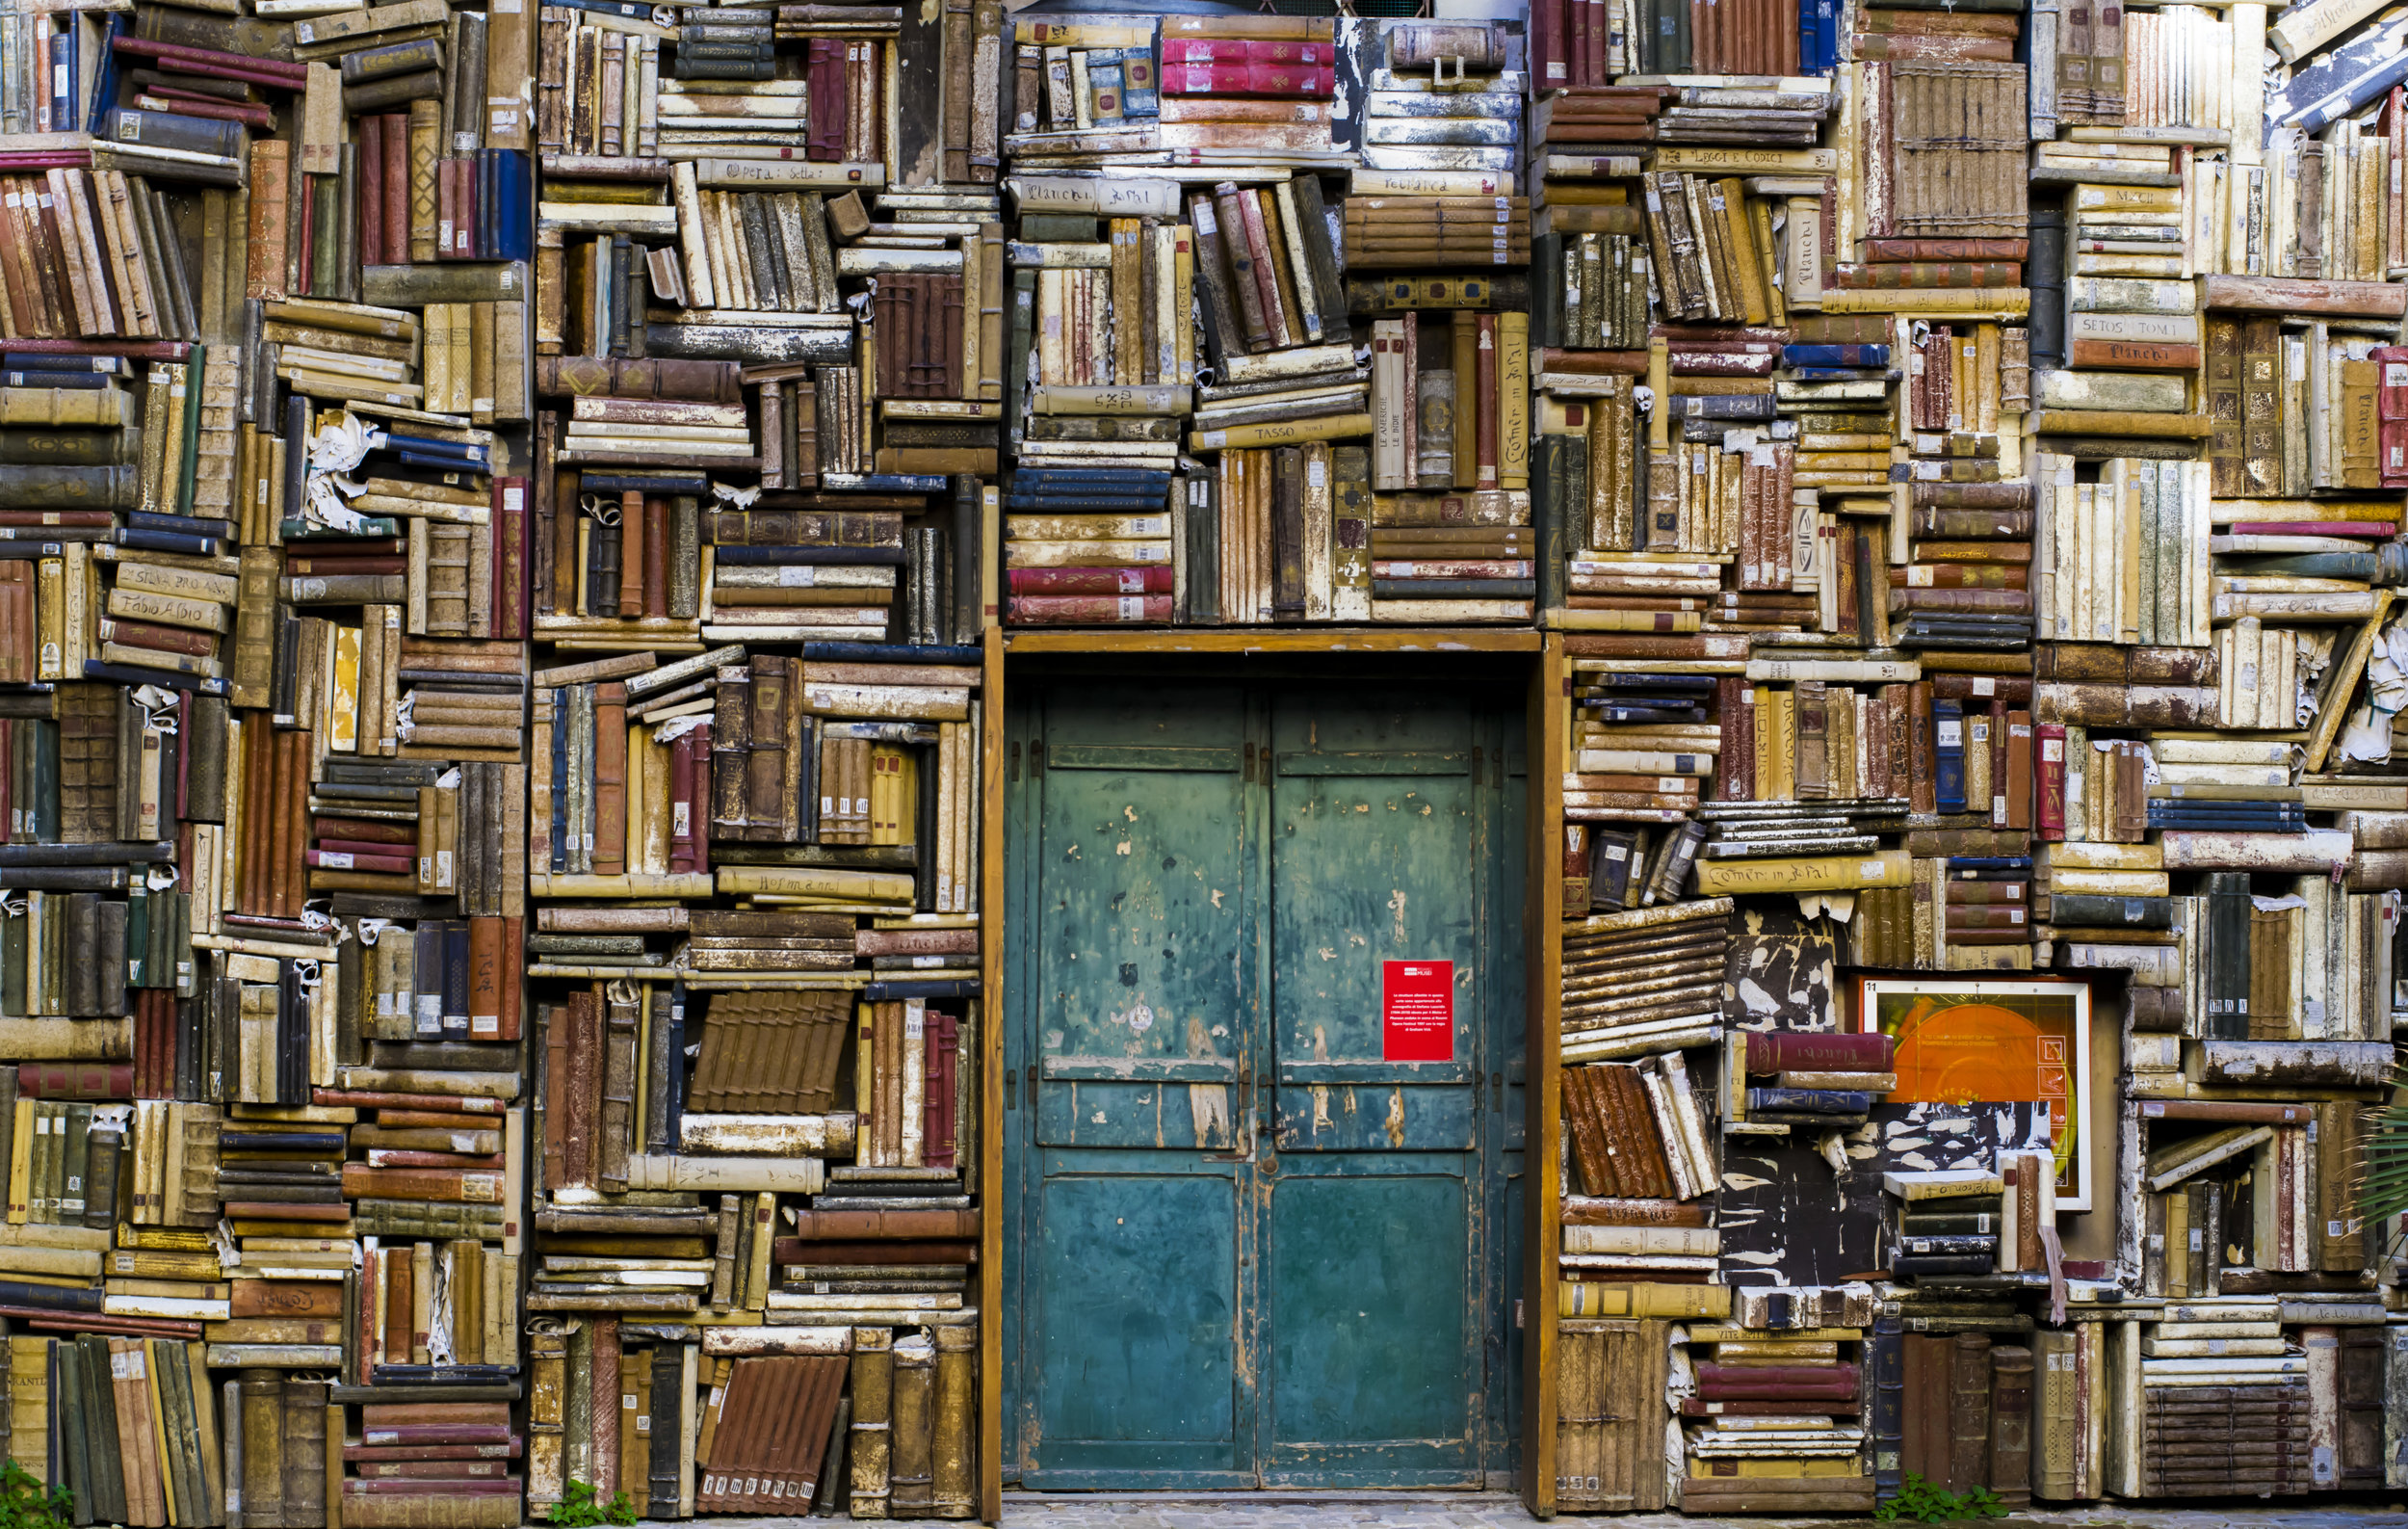 Find the right book to open the door! Easy!